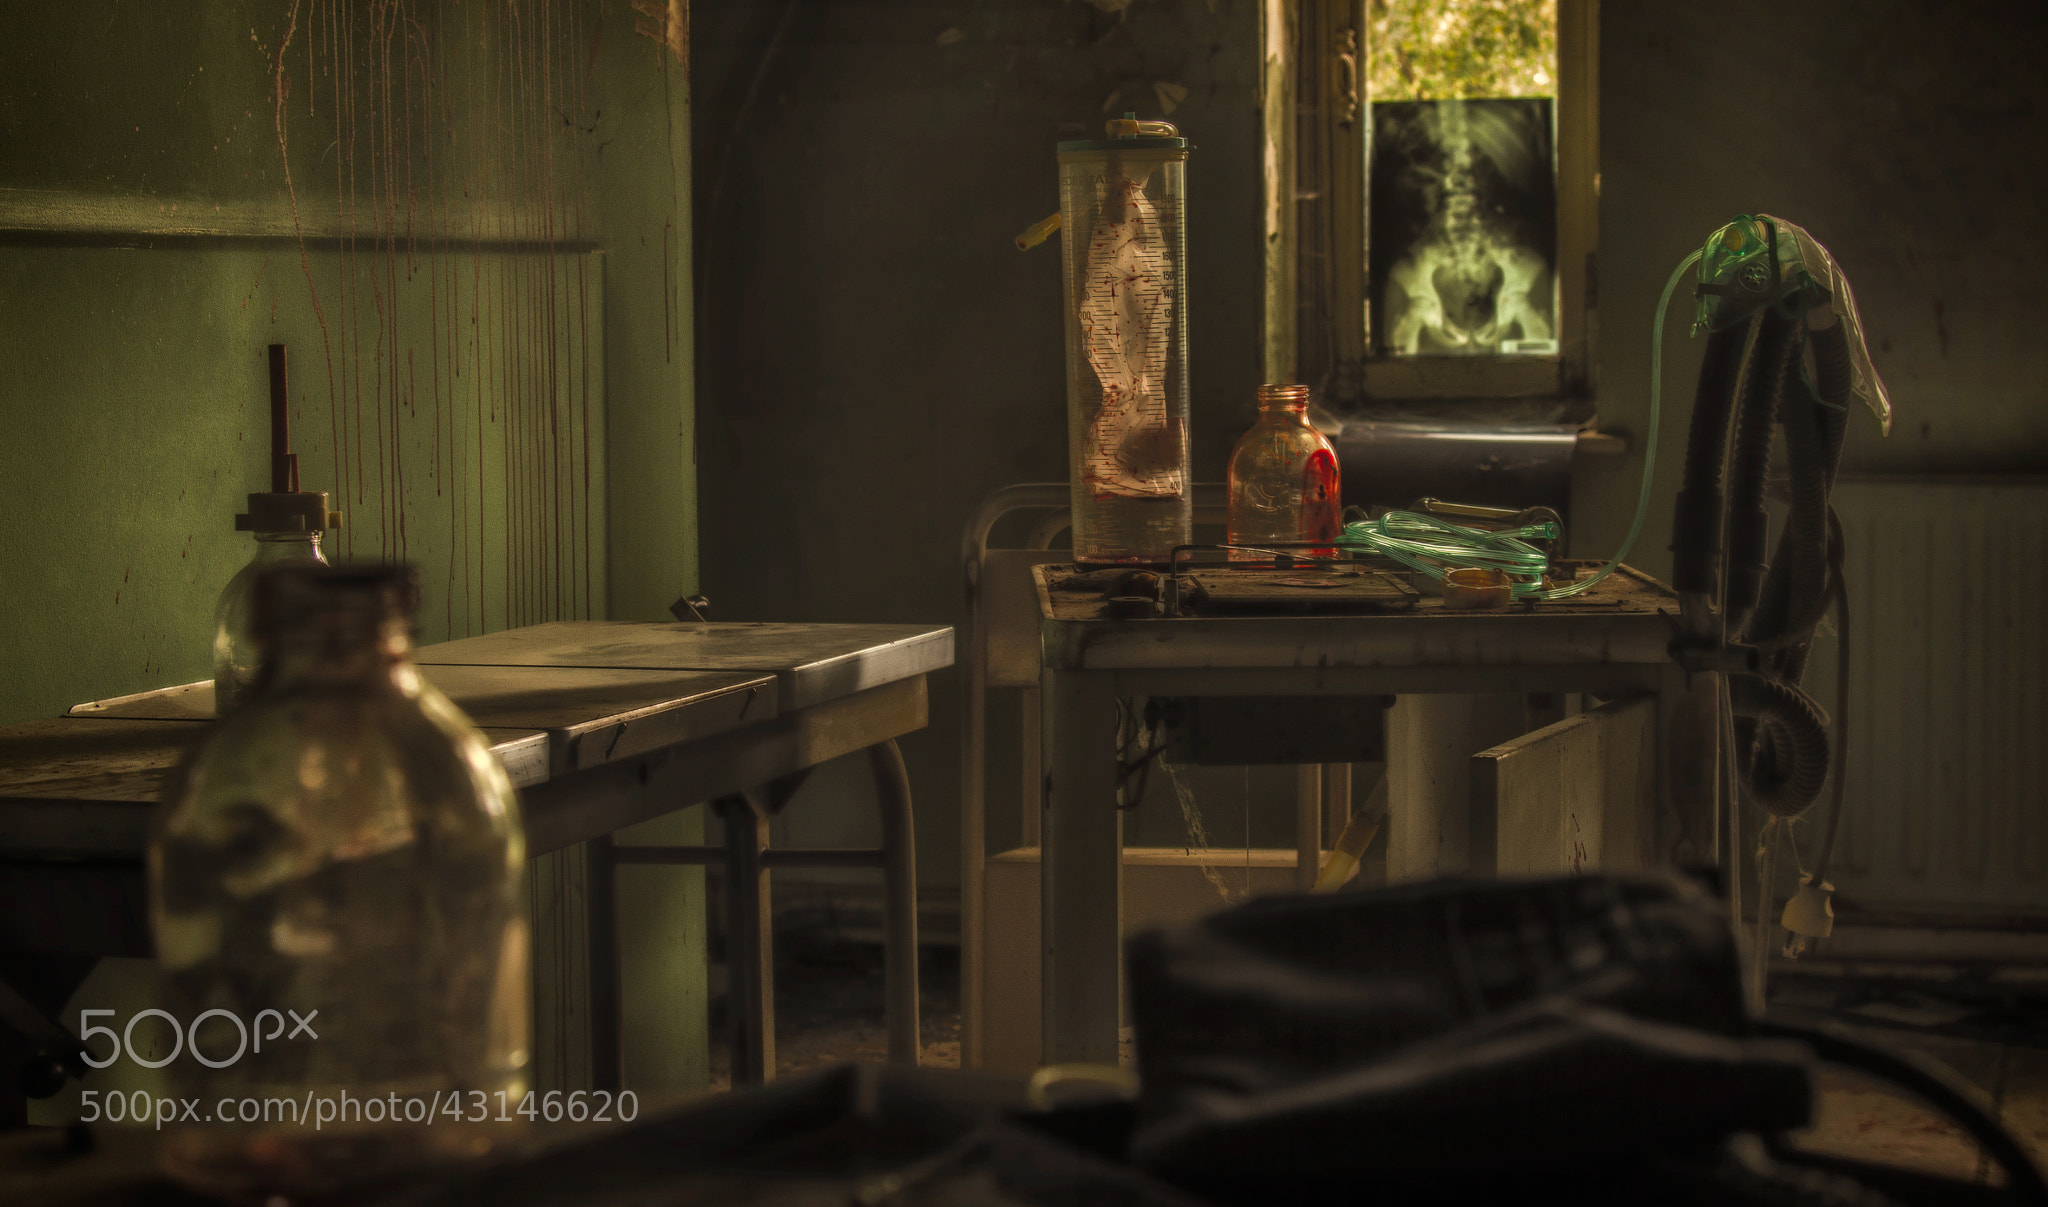 Photograph My Operation Room by Denis Van Linden on 500px